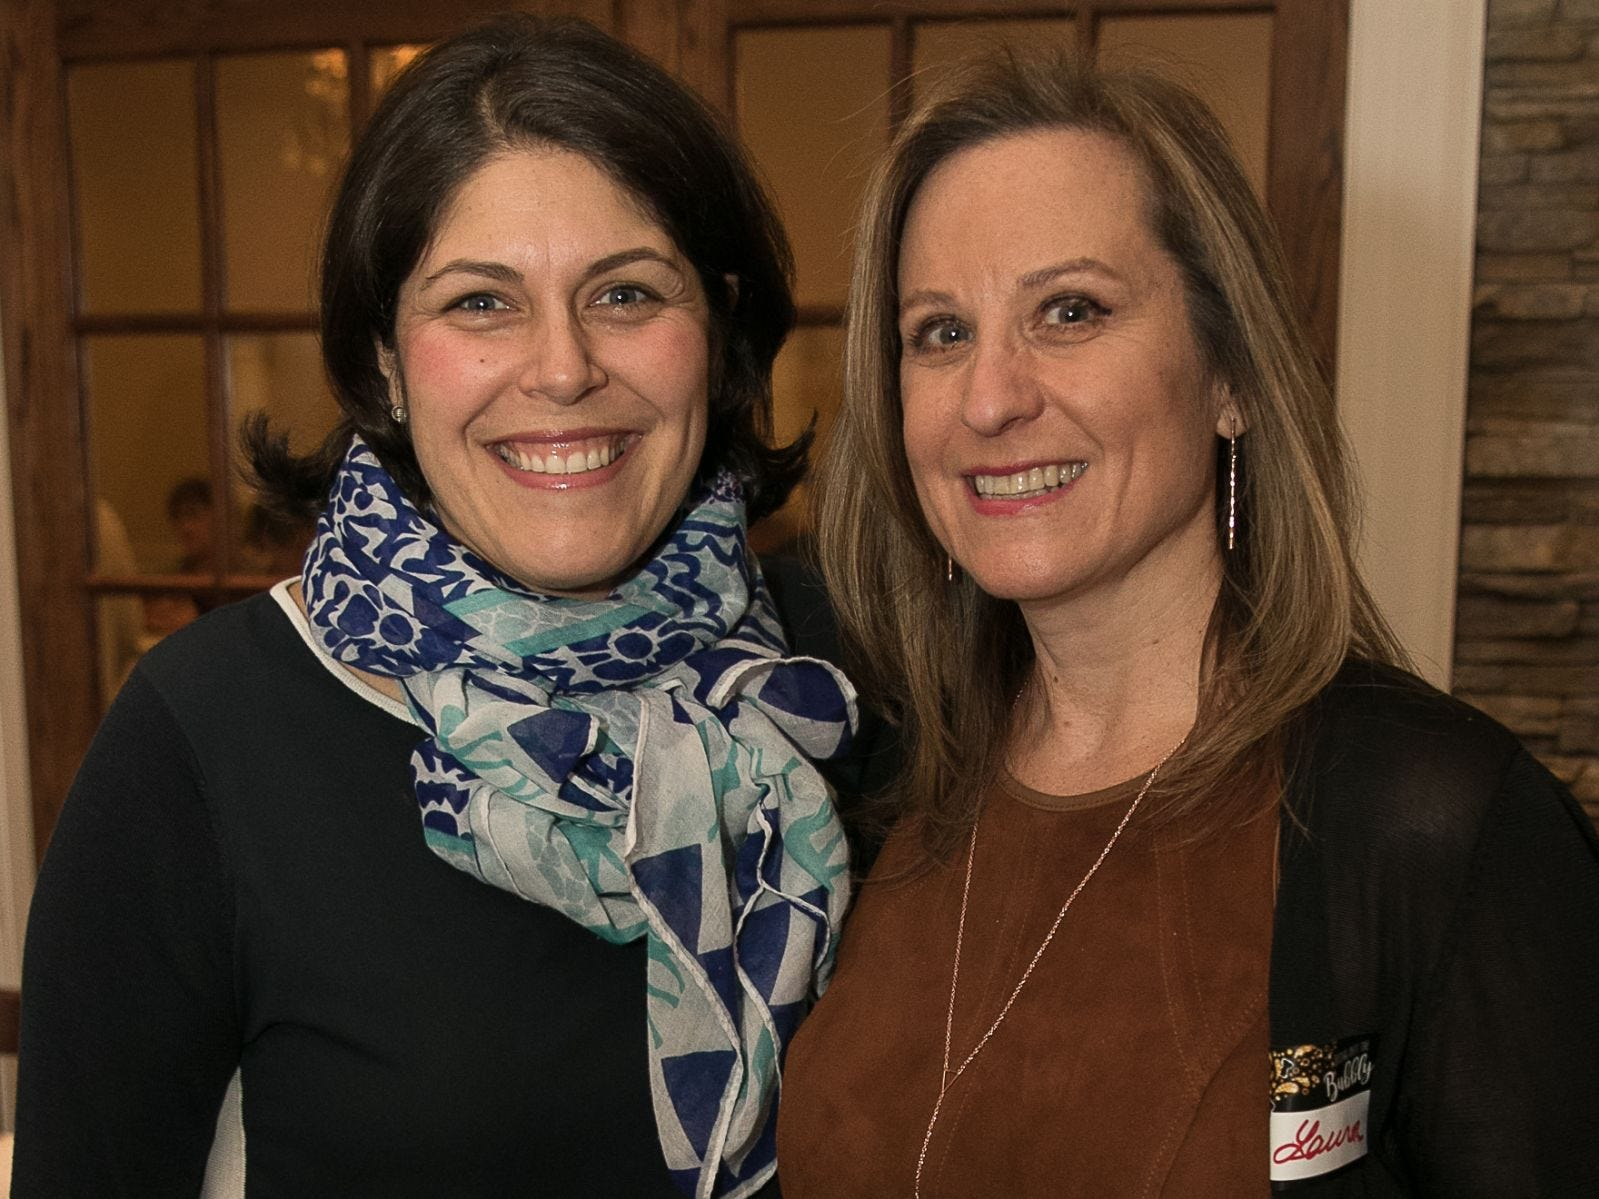 Rachel Hayek, Laura Taras. The Saddle River Valley Junior Woman's Club held an inductee dinnerfor incoming members at Bellisimo Restaurante in Montvale. 01/23/2019